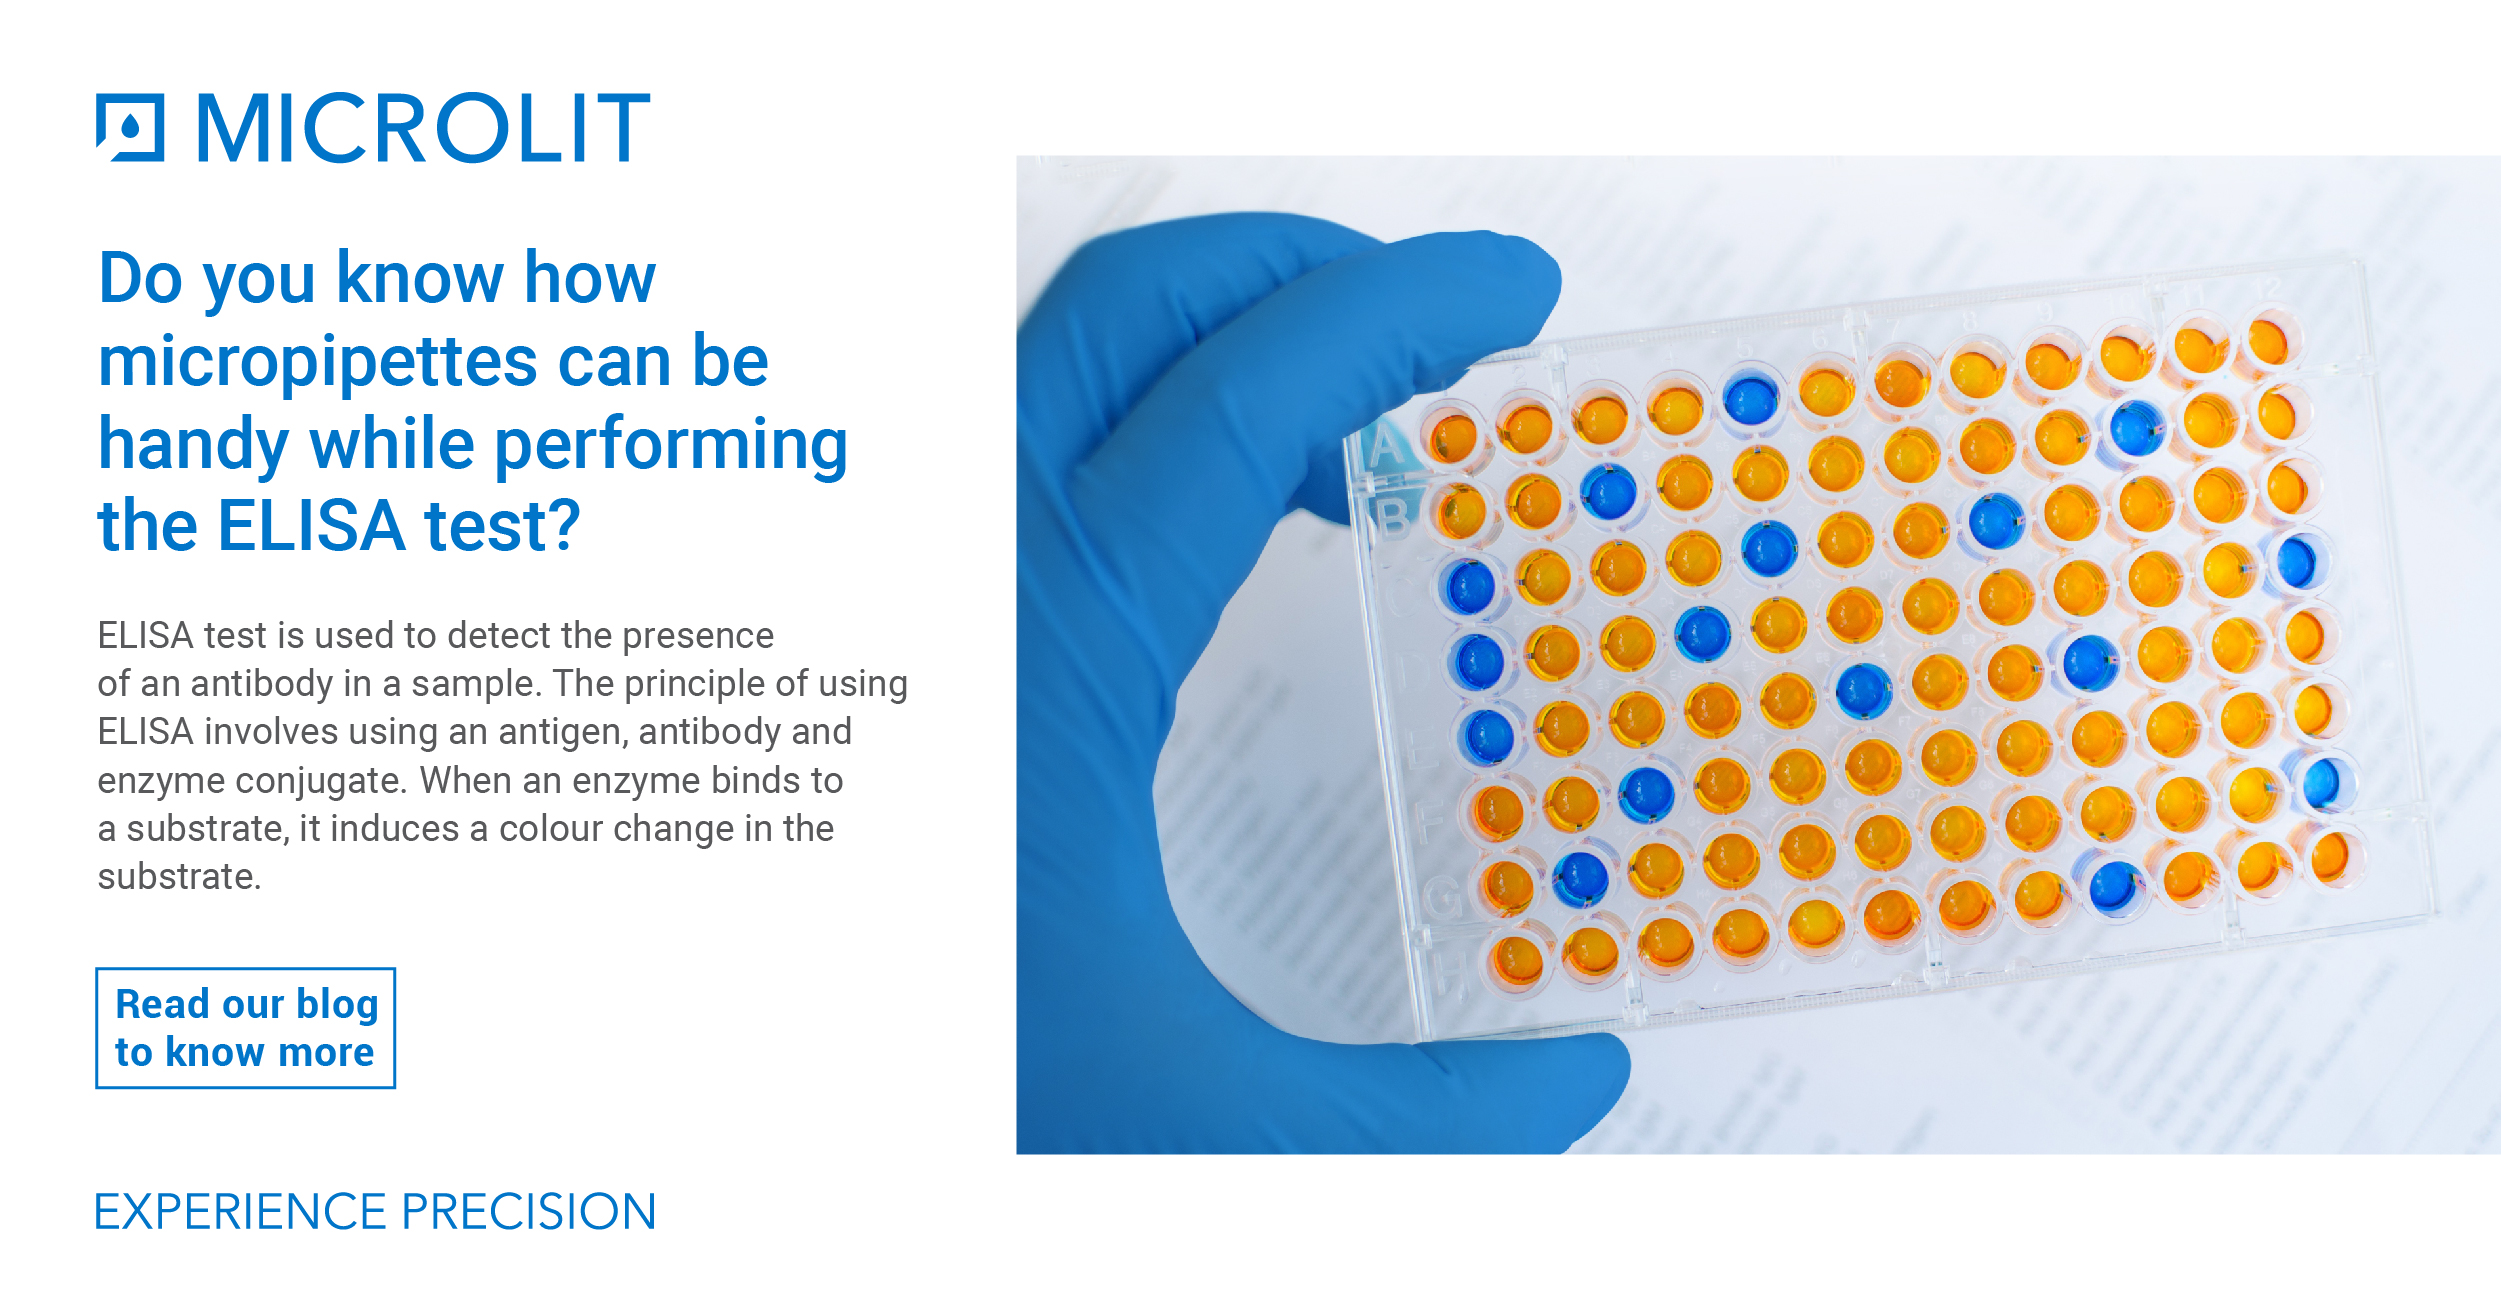 Understanding ELISA Test Basics and How Micropipettes Can be Handy While Performing These Tests